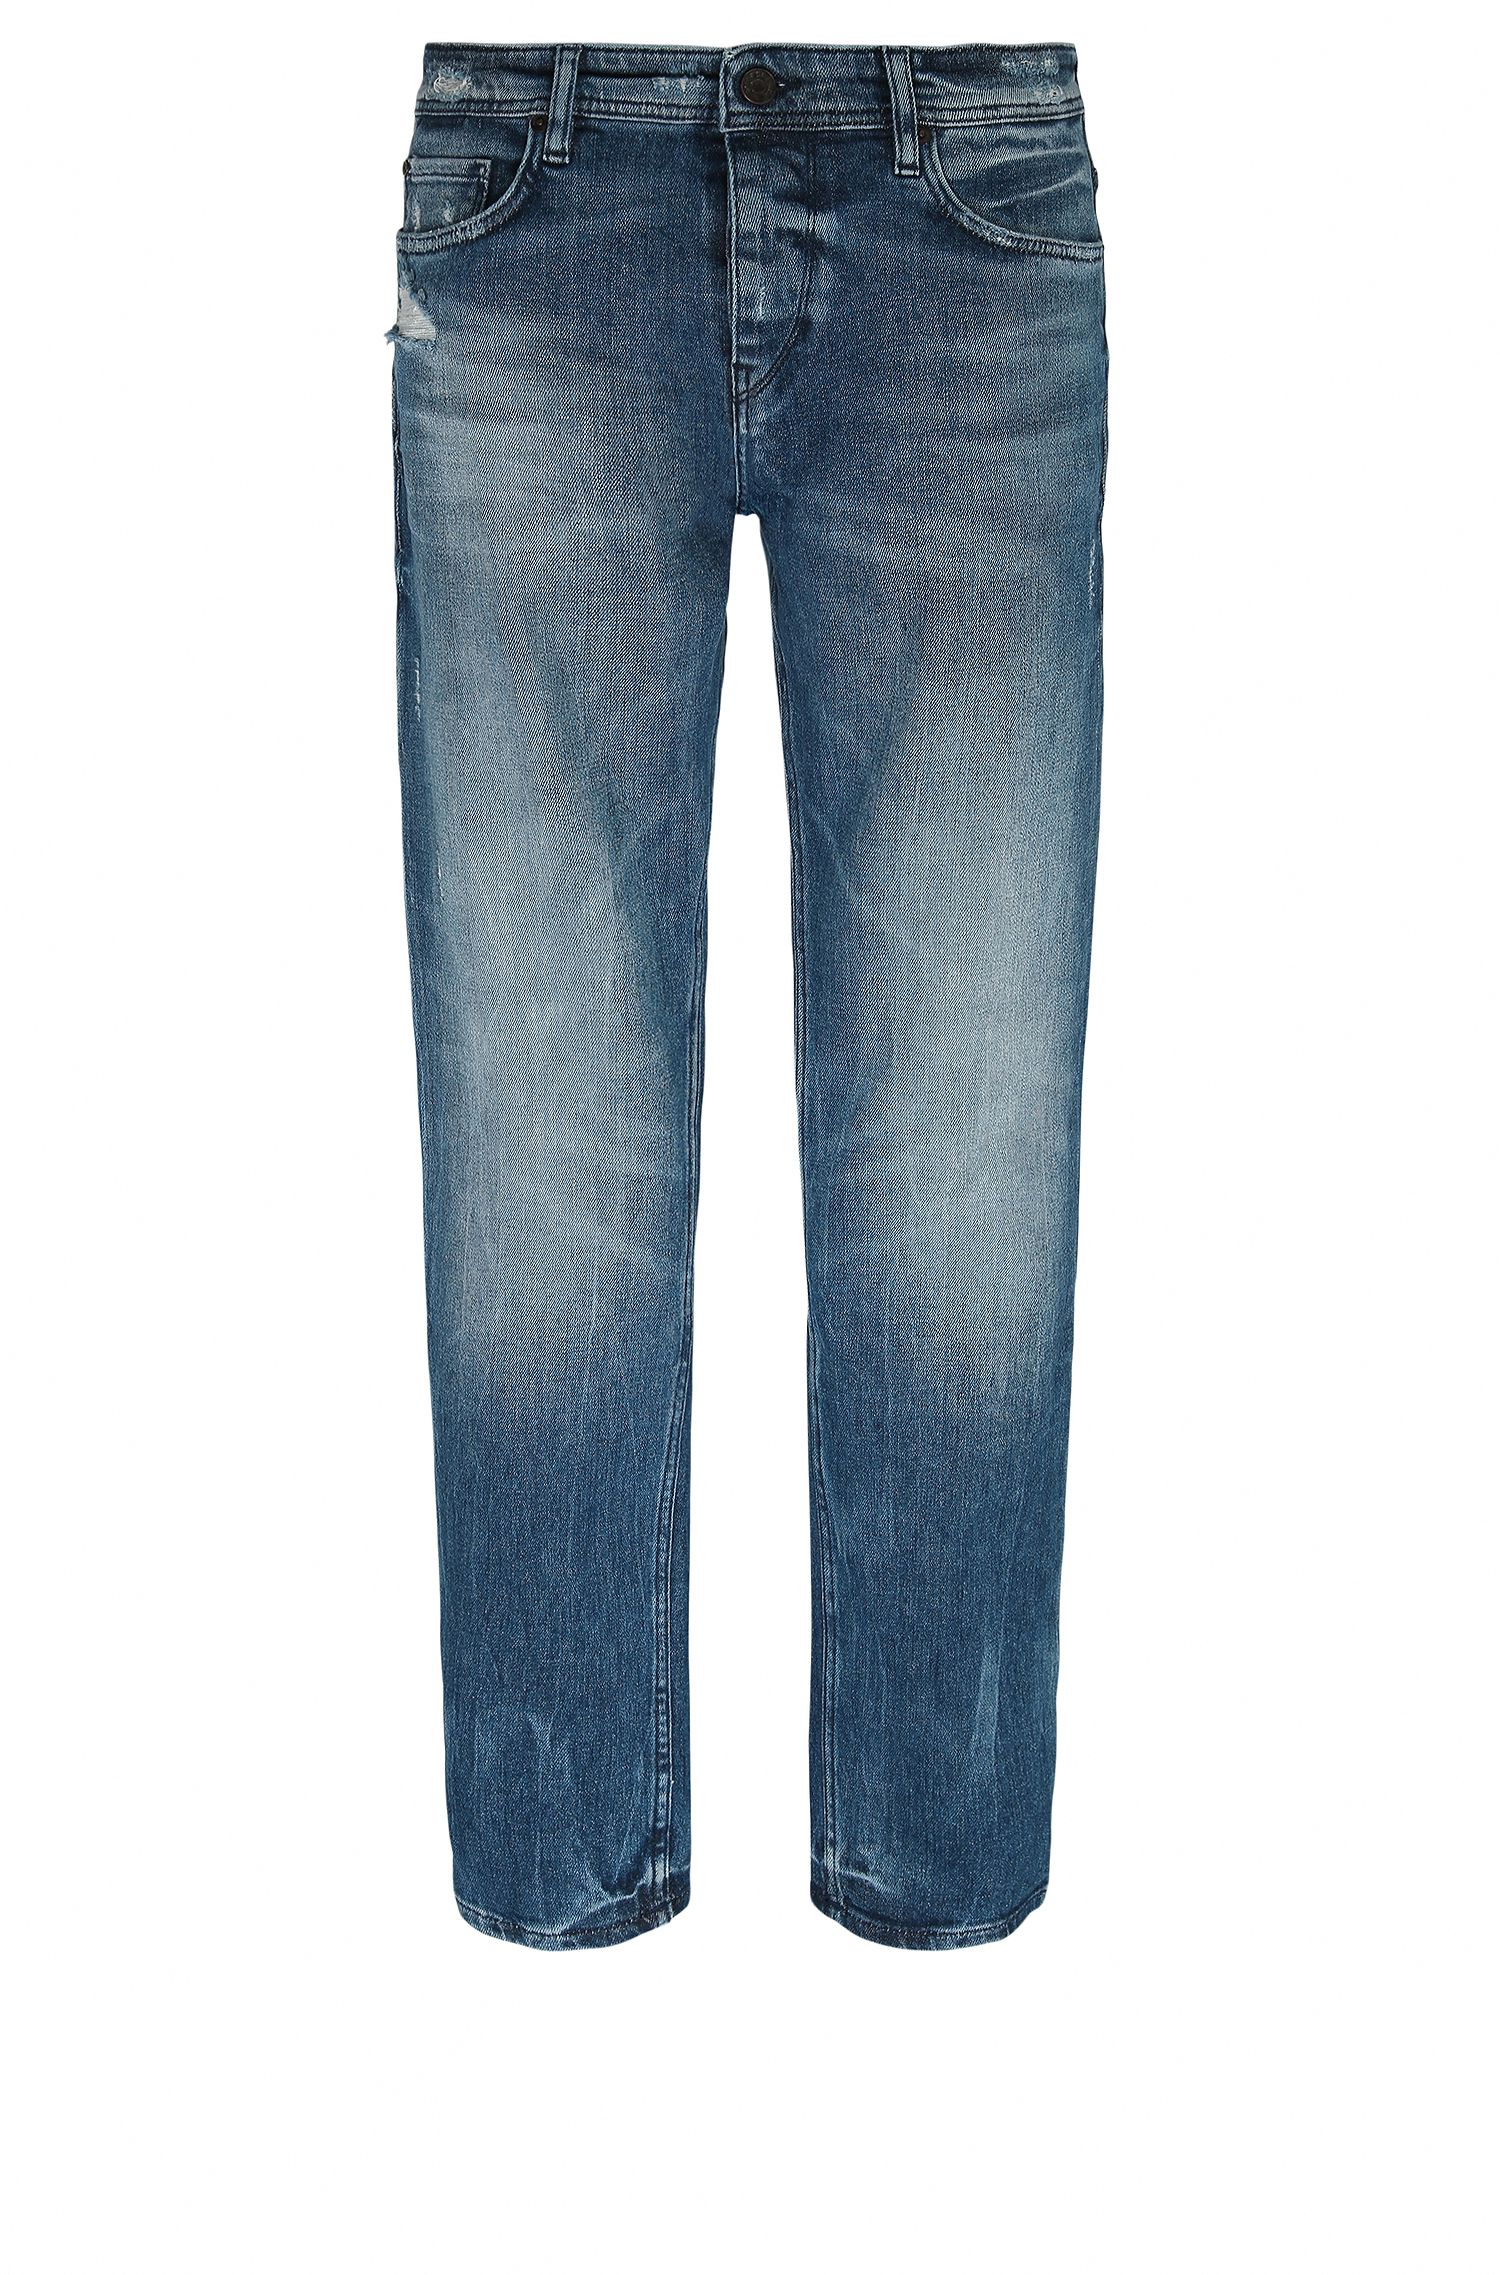 Jeans Tapered Fit en denim stretch confortable